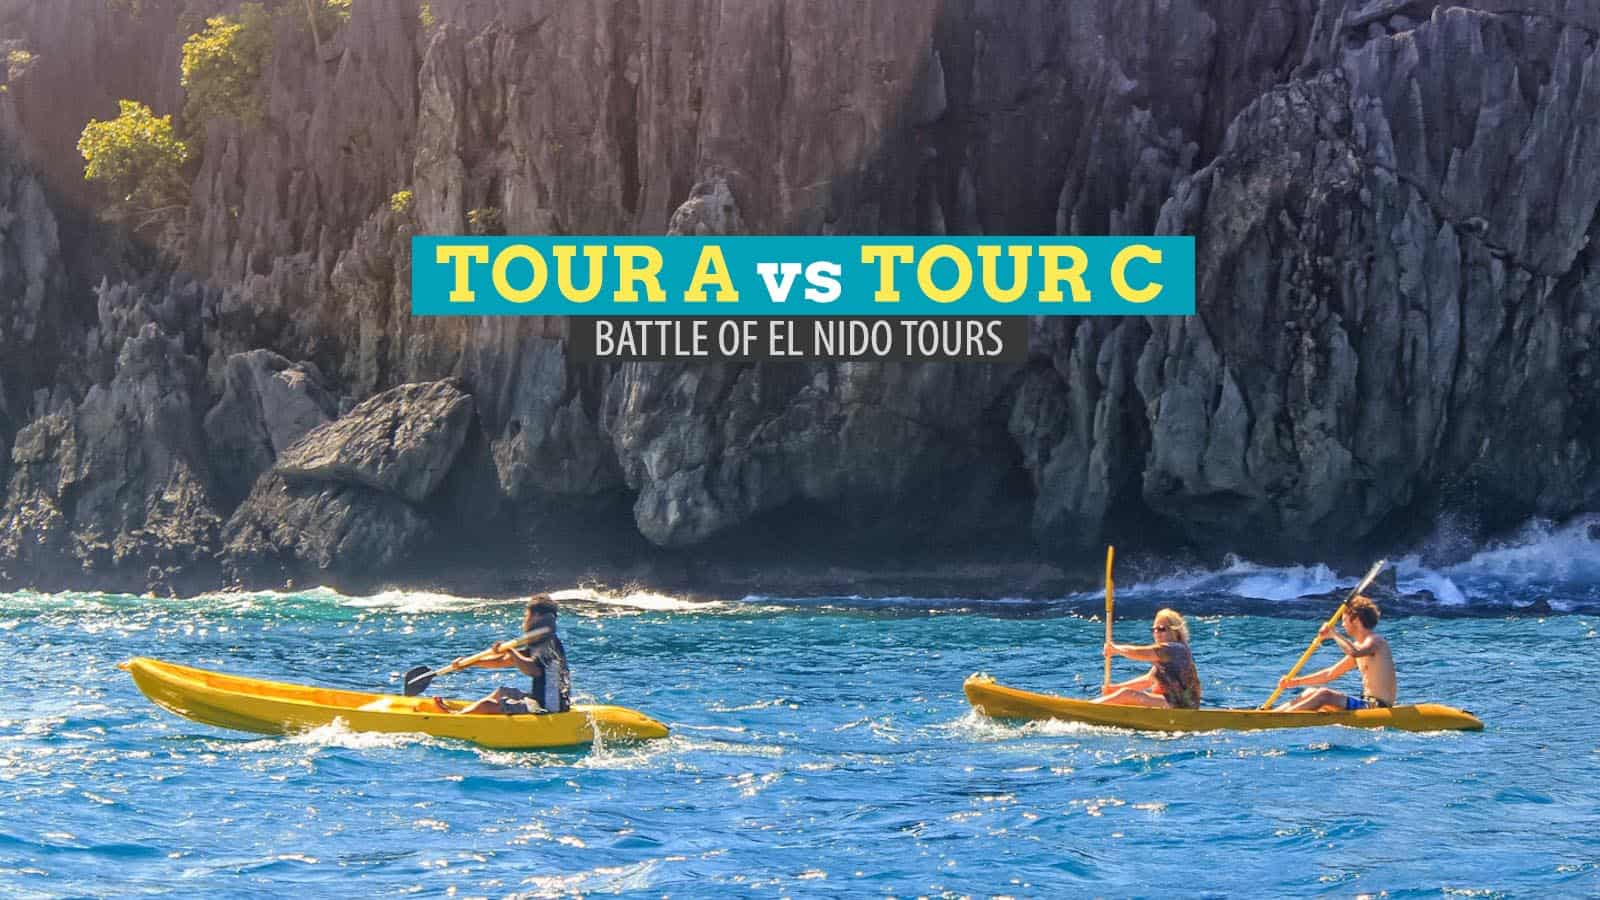 EL NIDO Tour A vs Tour C: What to Expect, Which is Better?| 穷游者行程博客